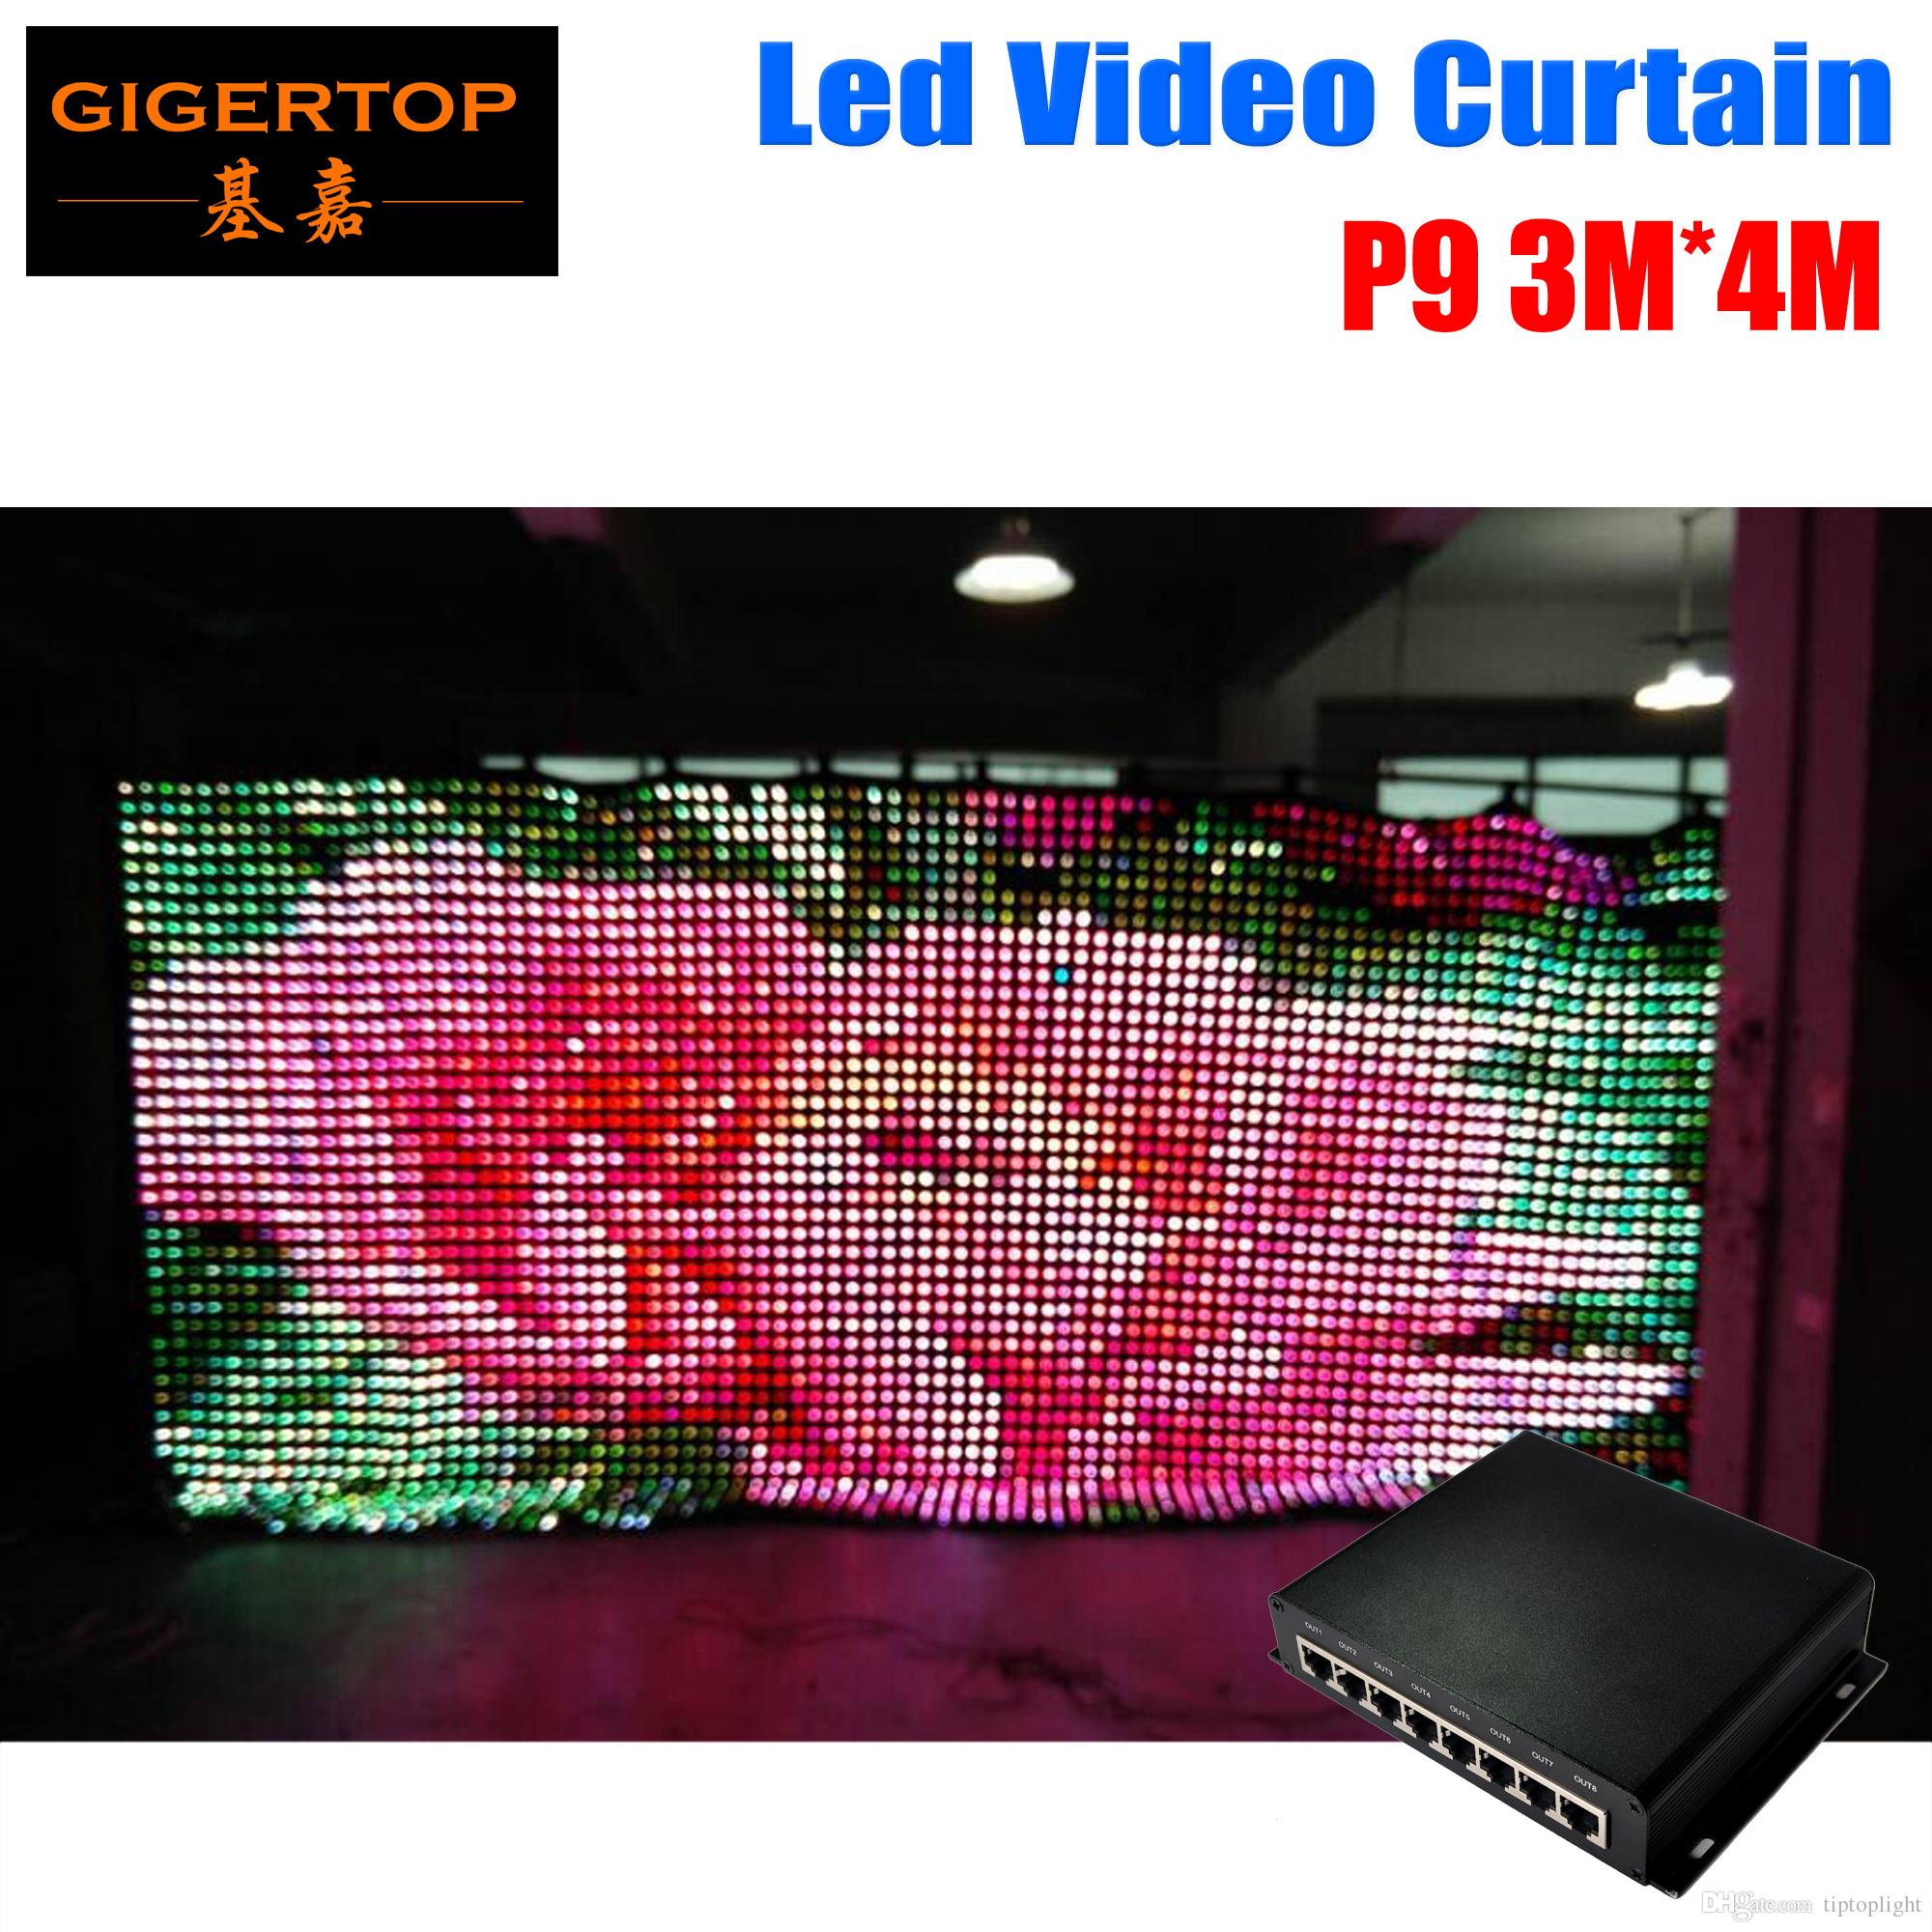 P9 3M*4M PC Mode Led Video Curtain DJ Stage Background 1200pcs 3in1 Led Curtain With 80 Kinds Pattern Wedding Stage Backdrop